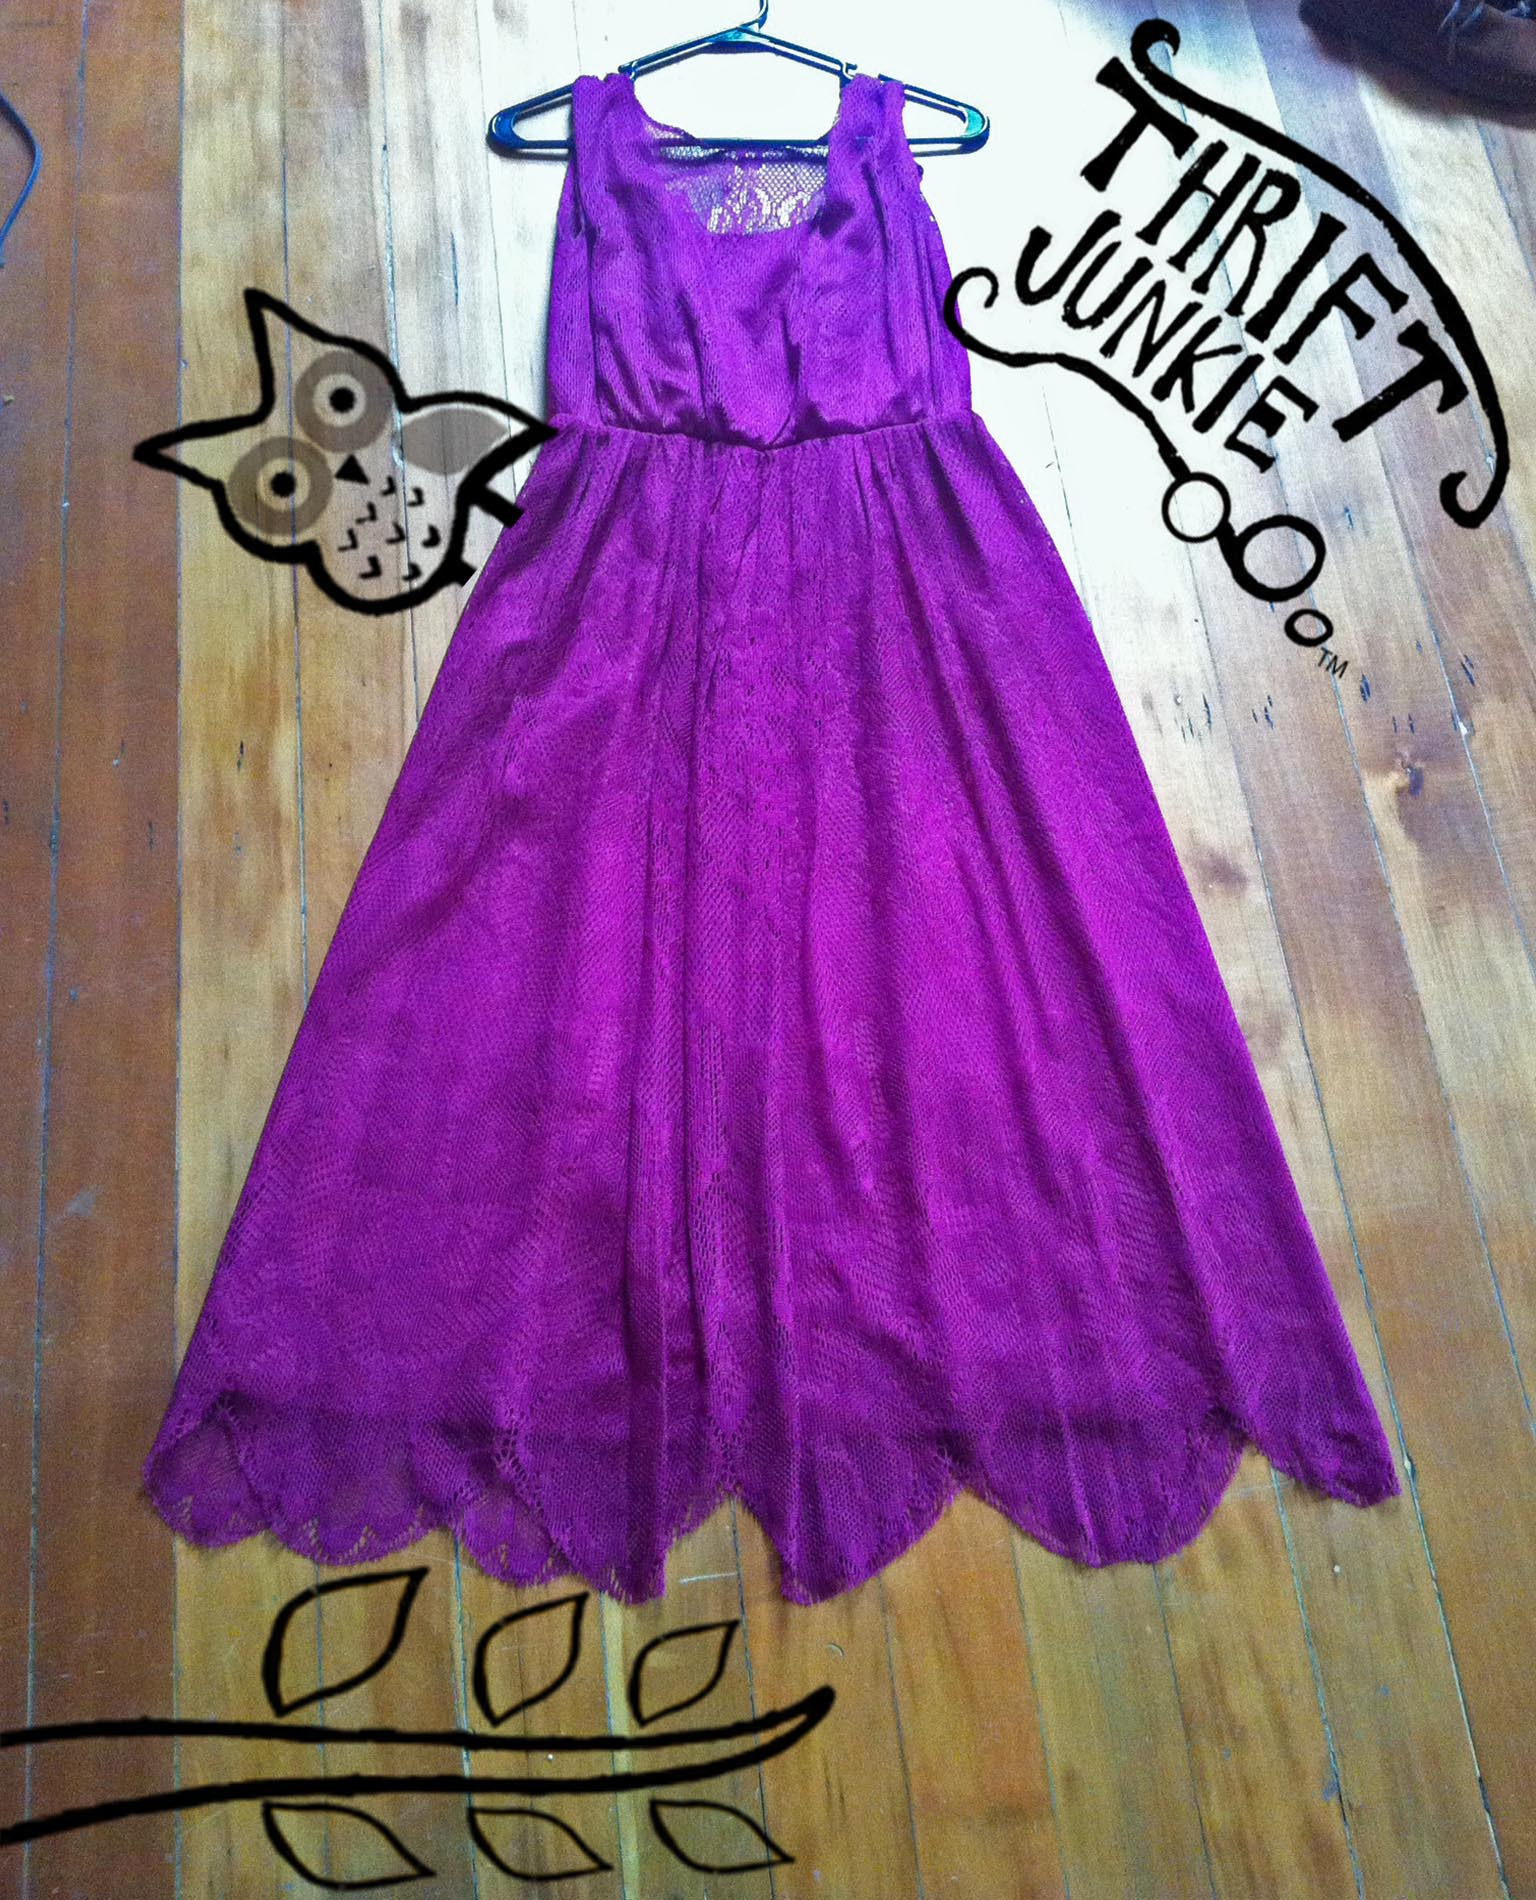 purplepassiondress.jpg